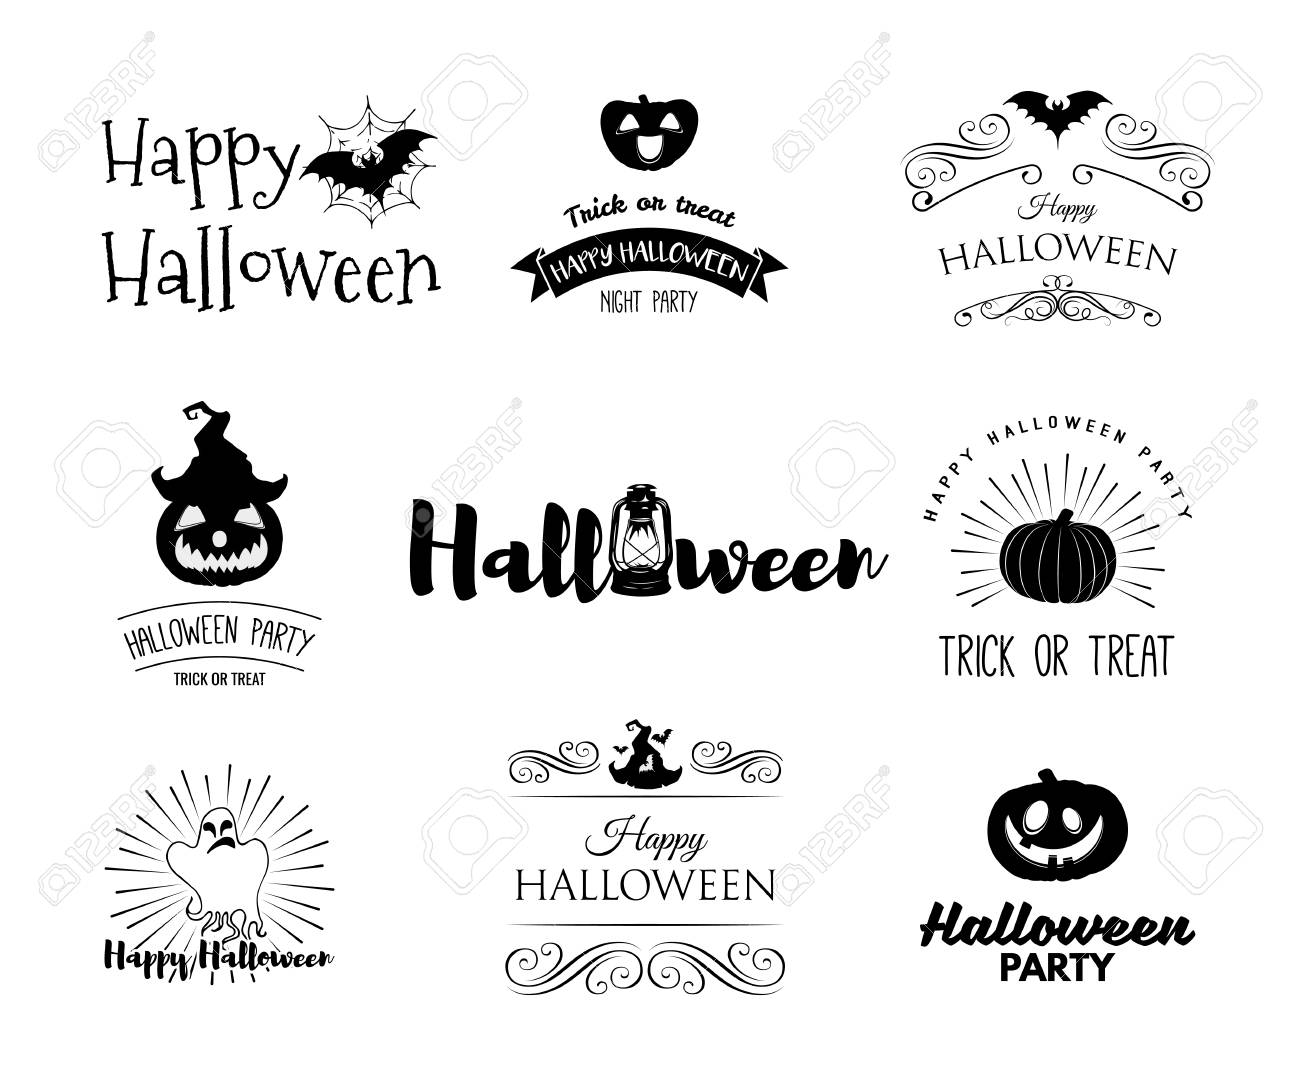 halloween party invitation label templates with holiday symbols